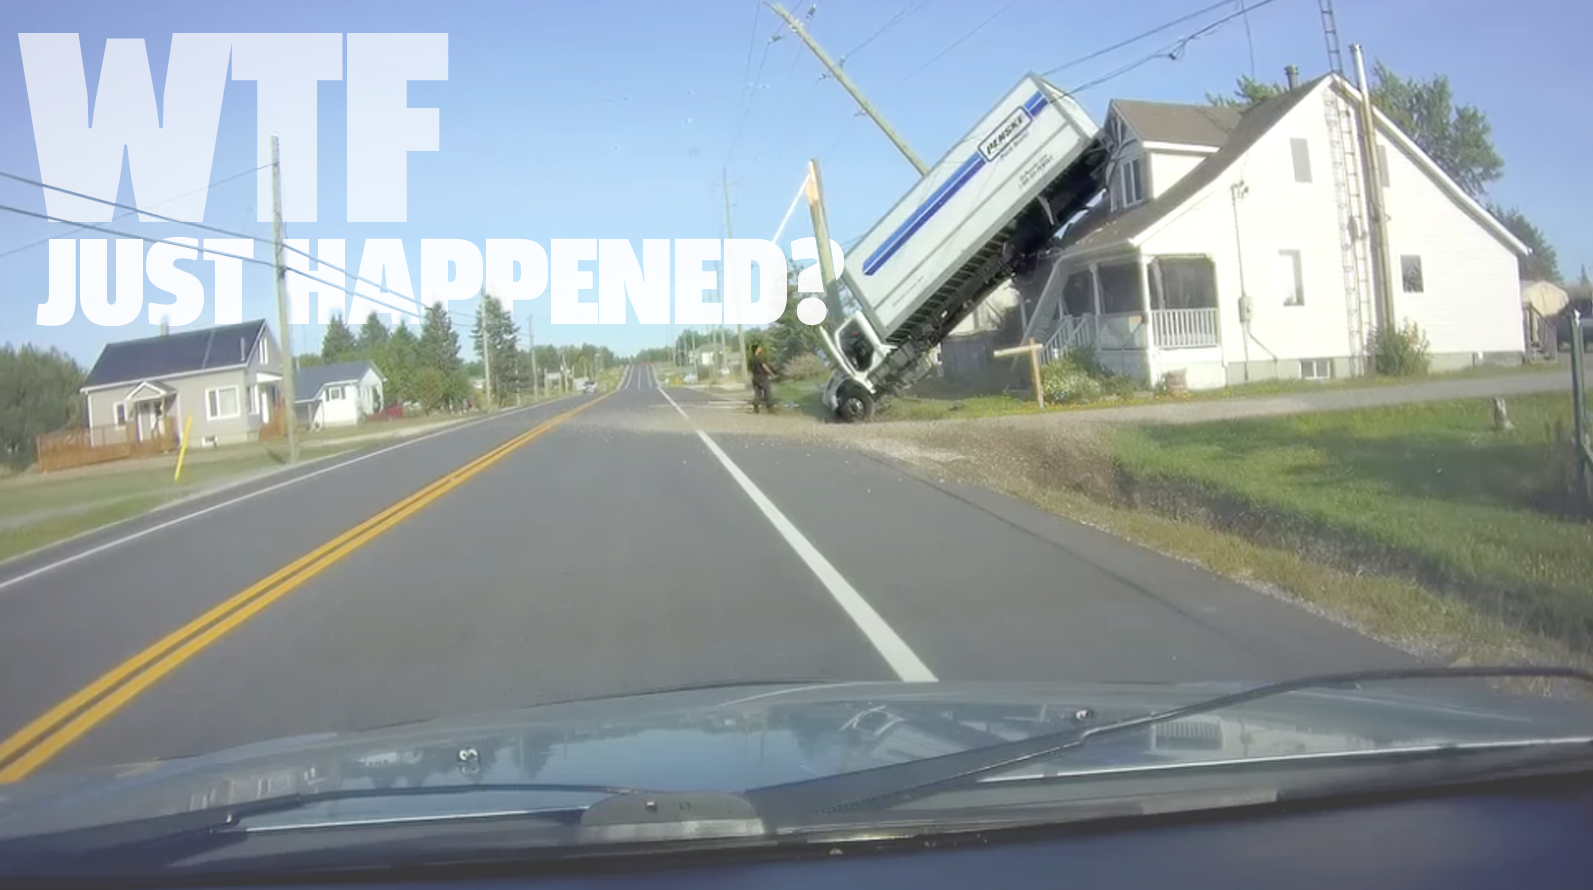 I'm Still Not Exactly Sure How This Dude Managed To Get That Truck Stuck On Top Of A House